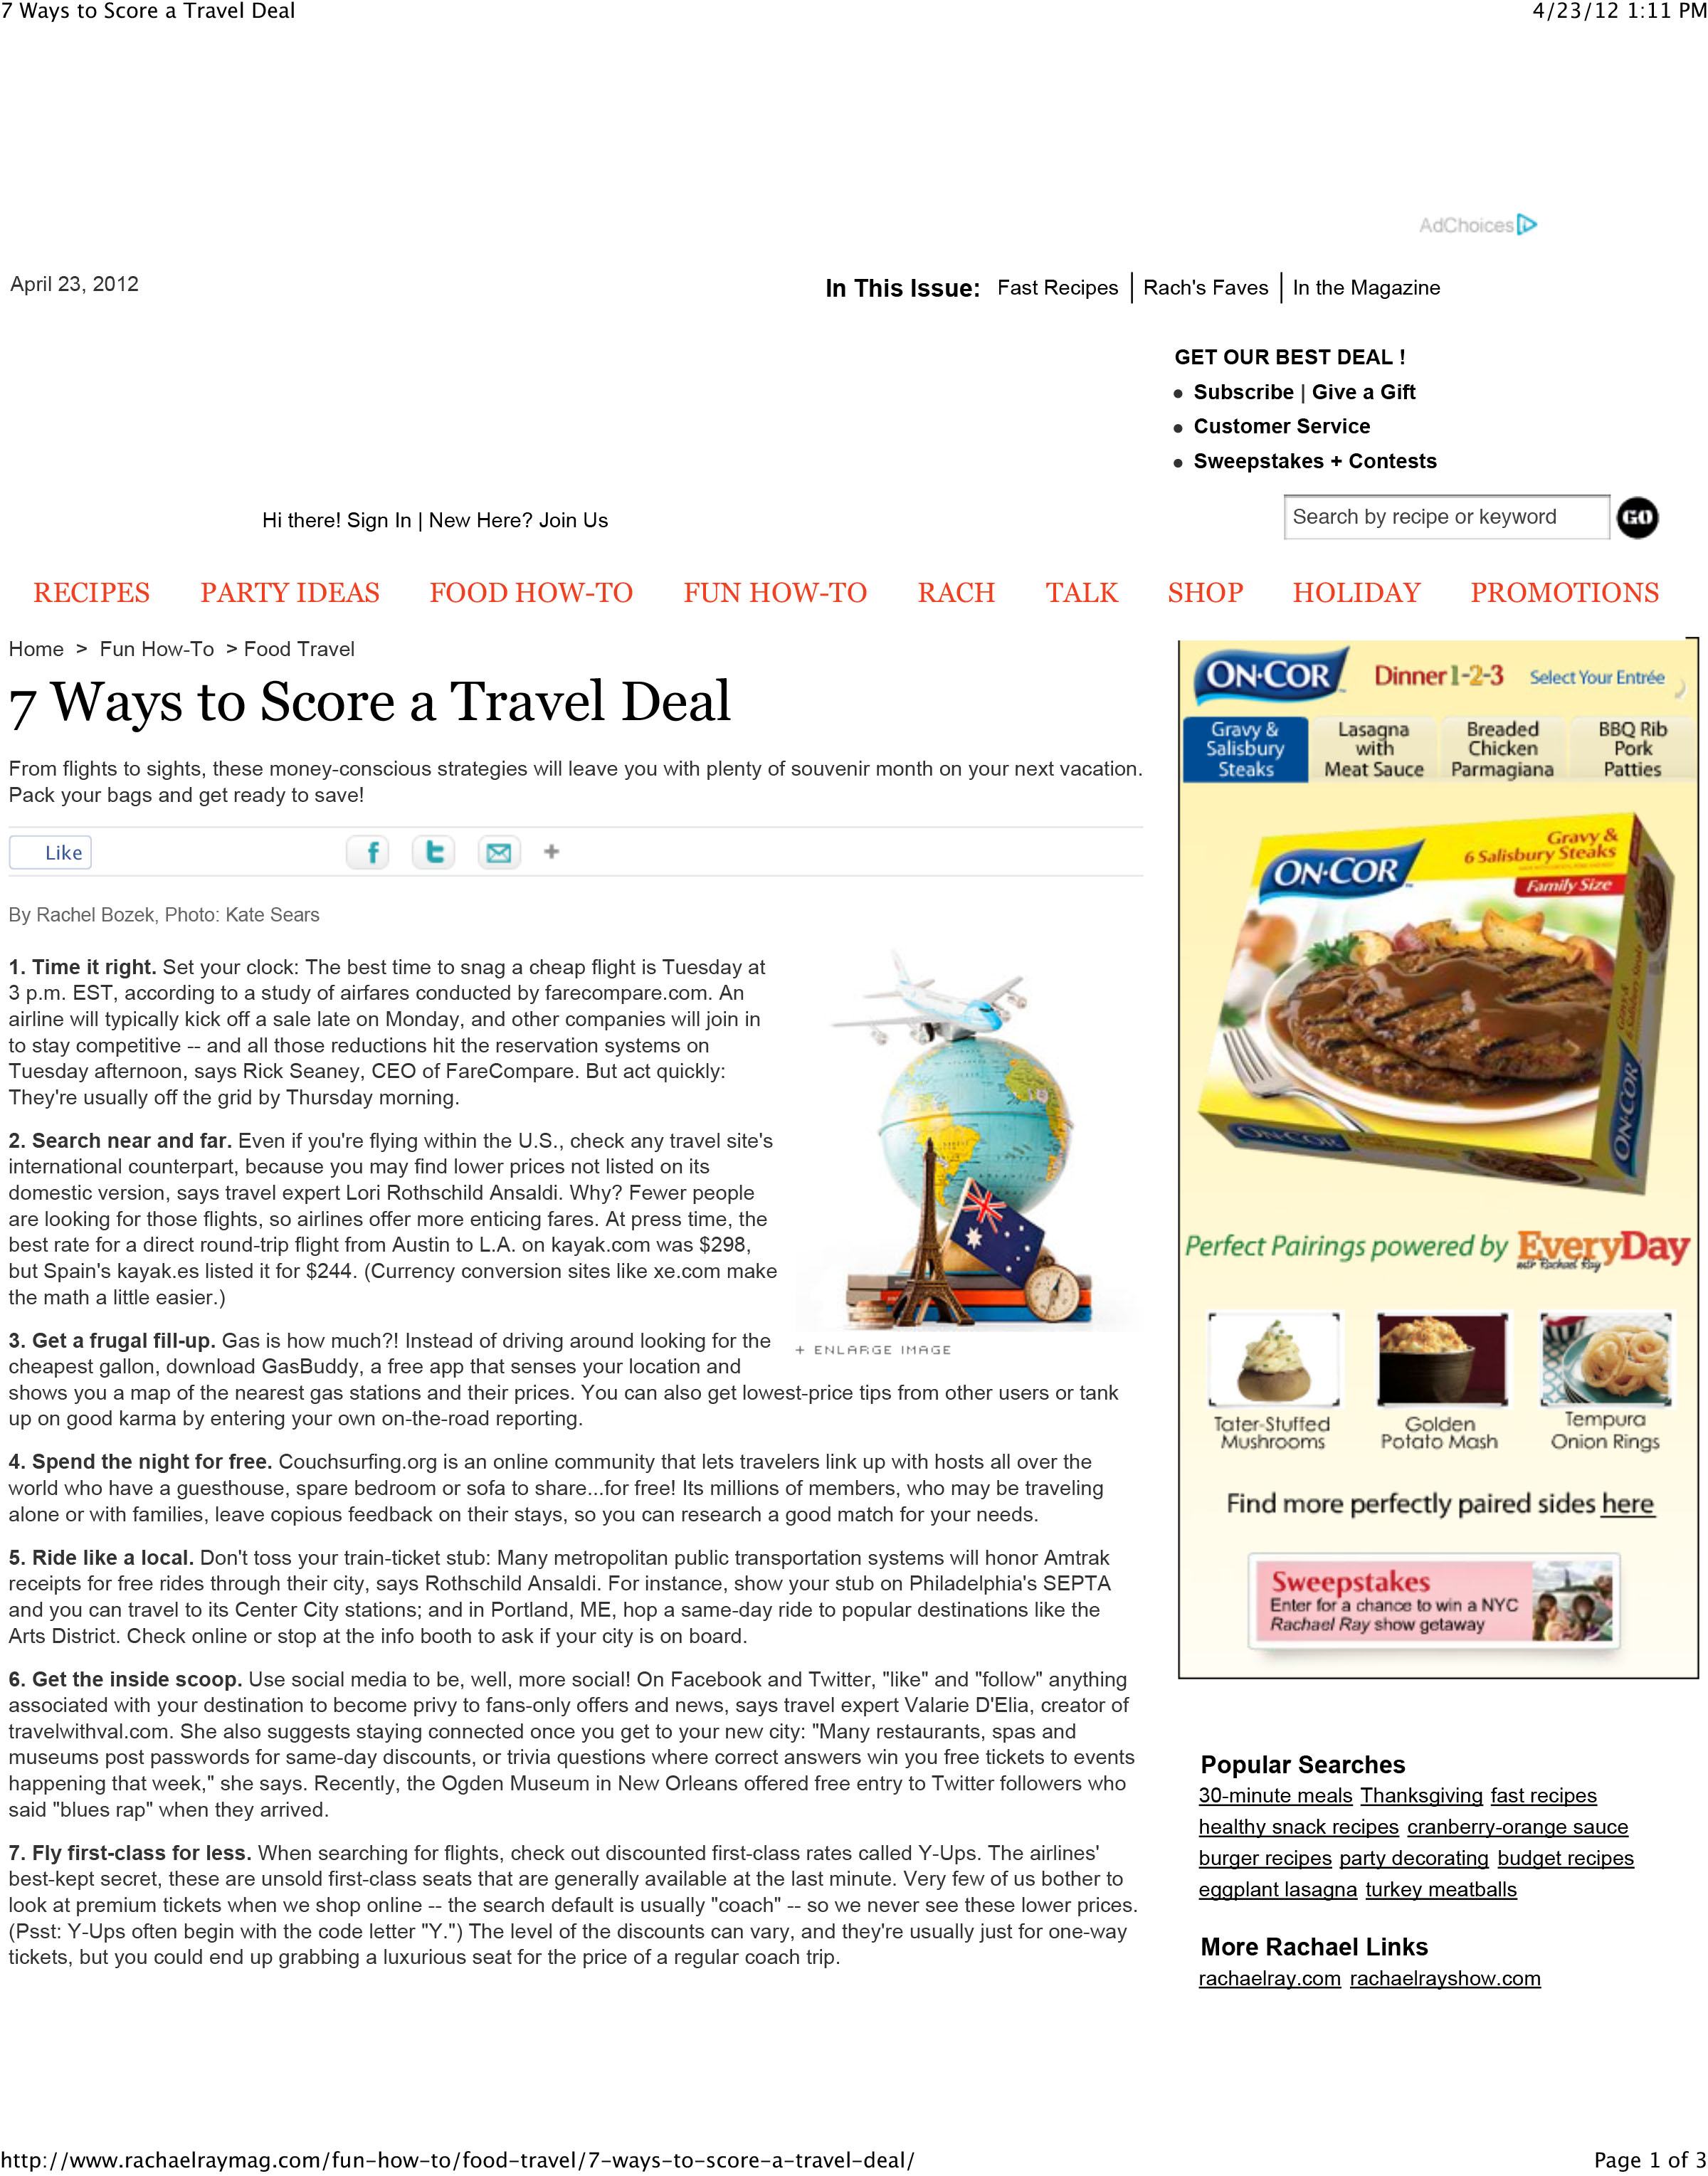 WritingAdults_Every Day with Rachael Ray 7 Ways to Score a Travel Deal-1.jpg